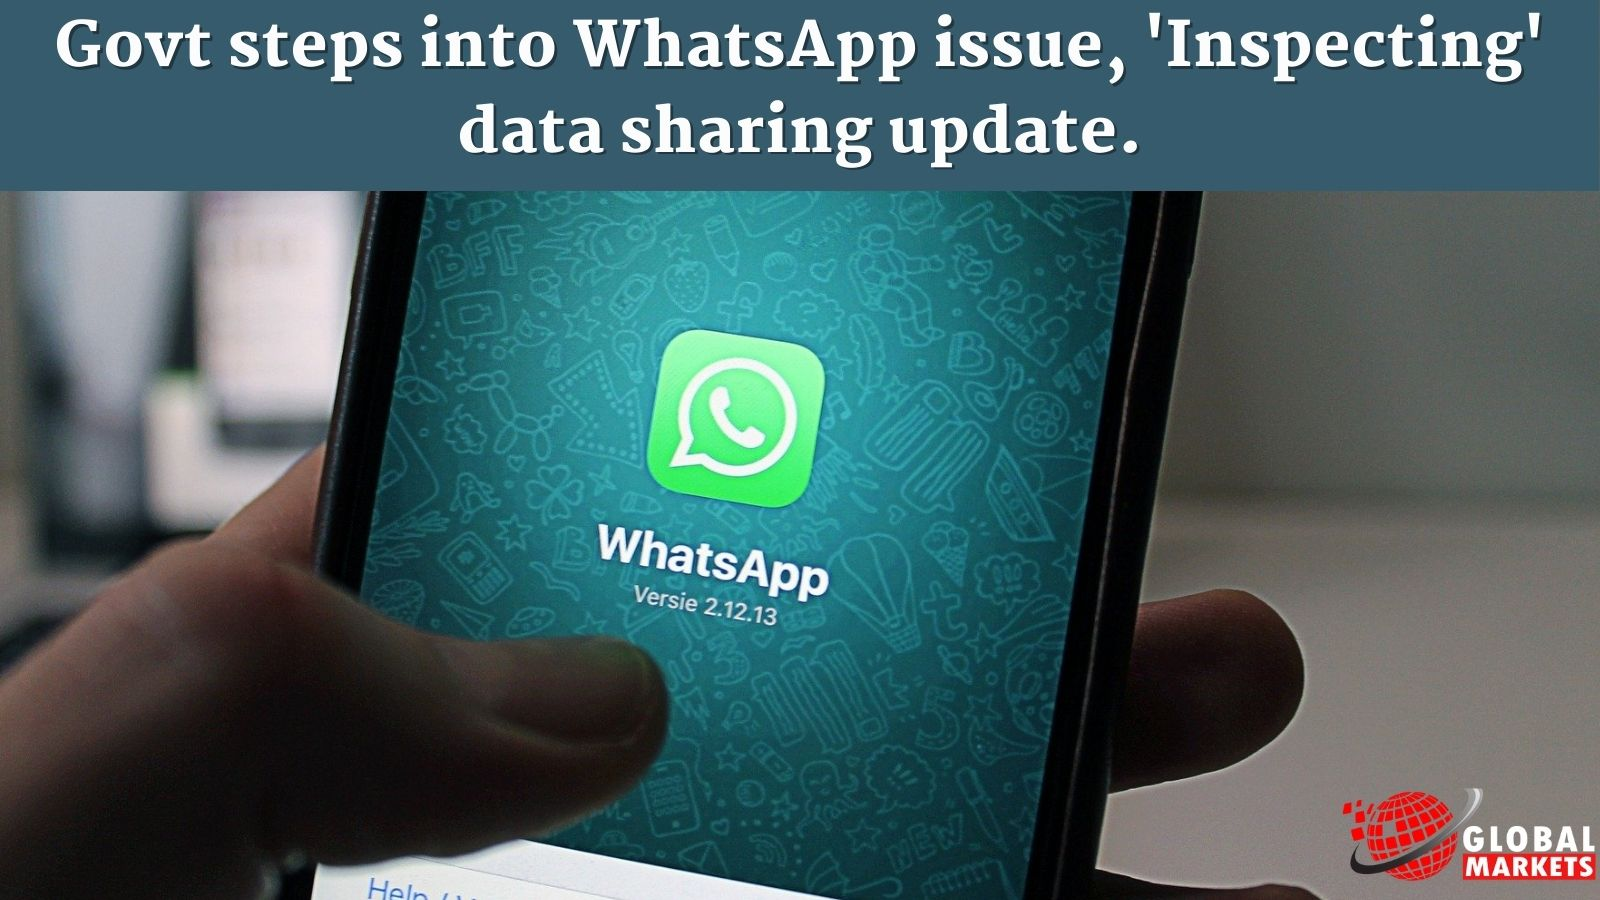 Govt step into WhatsApp issue, 'Inspecting' data sharing update.